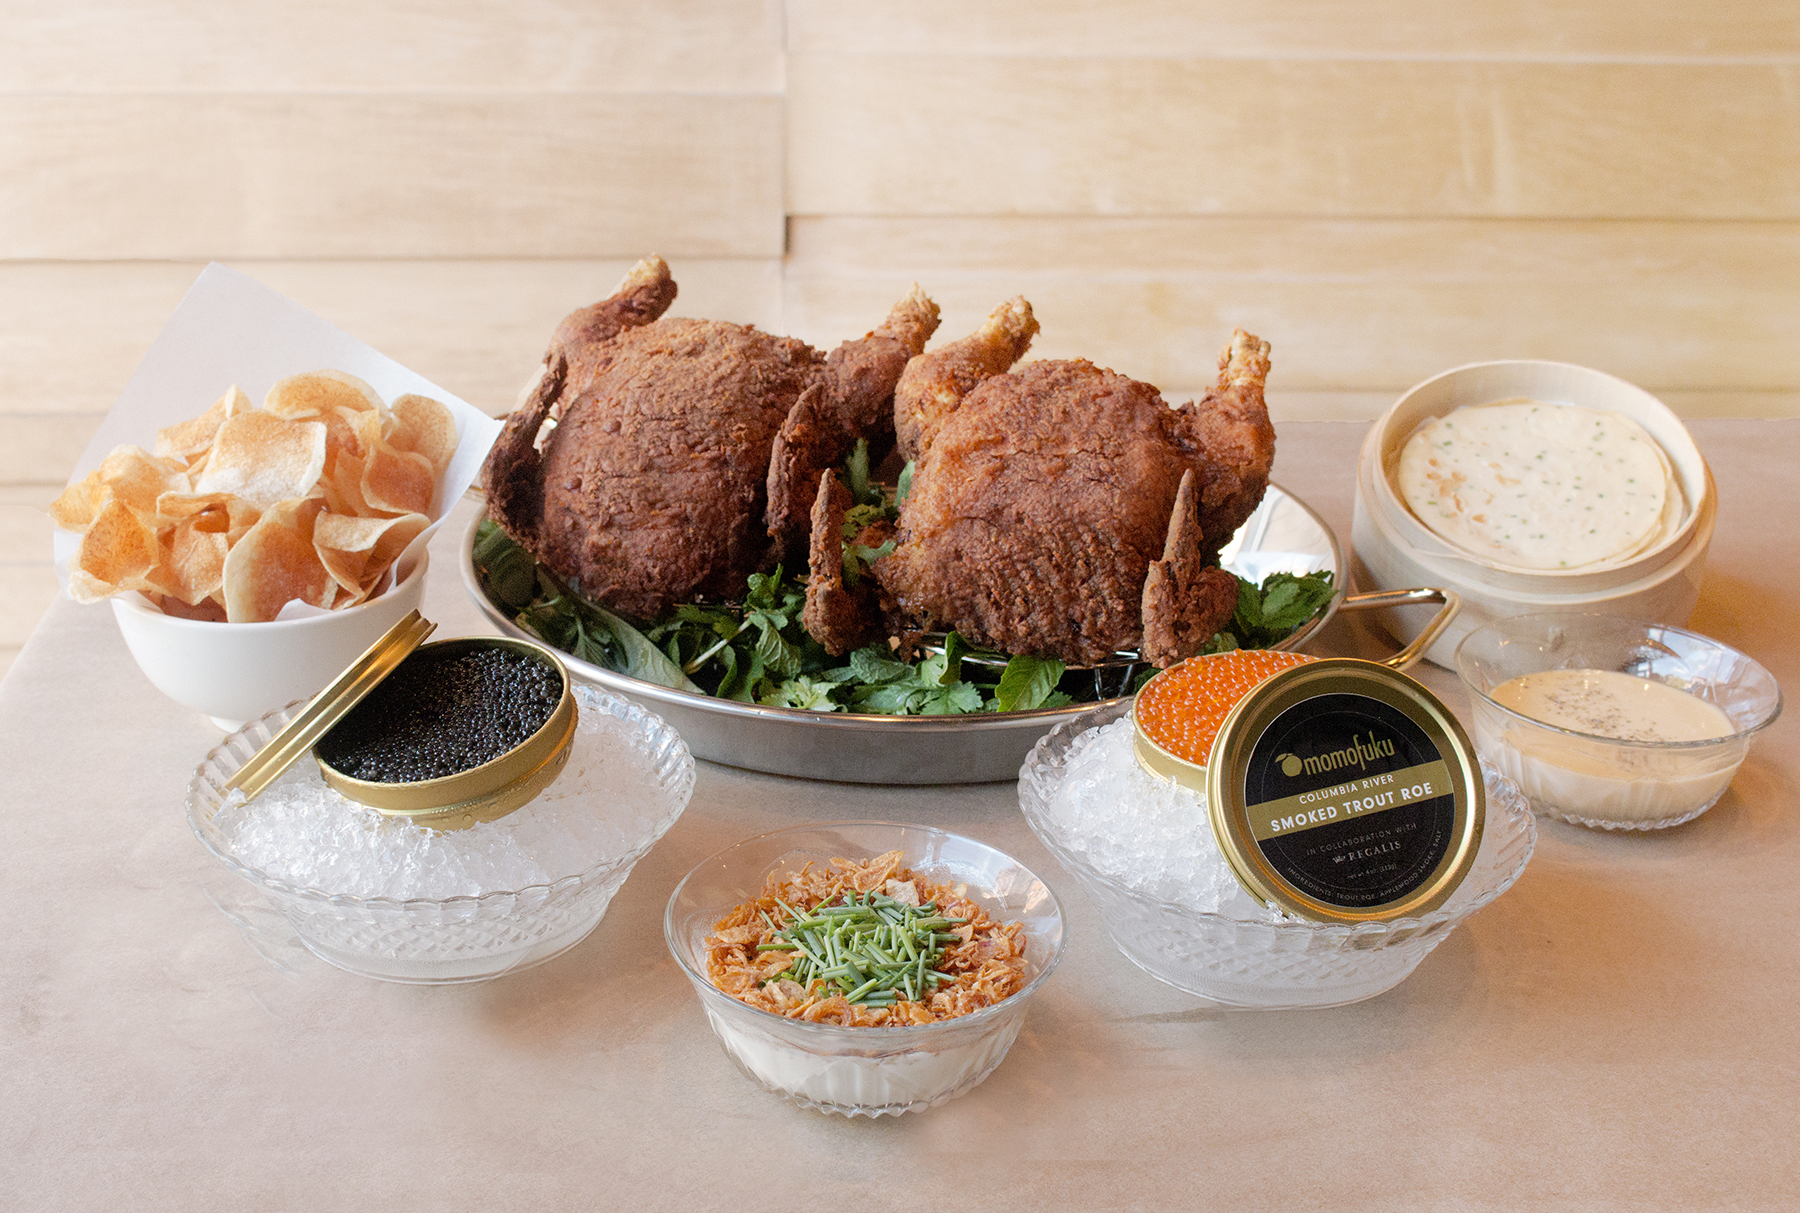 CAVIAR AND FRIED CHICKEN